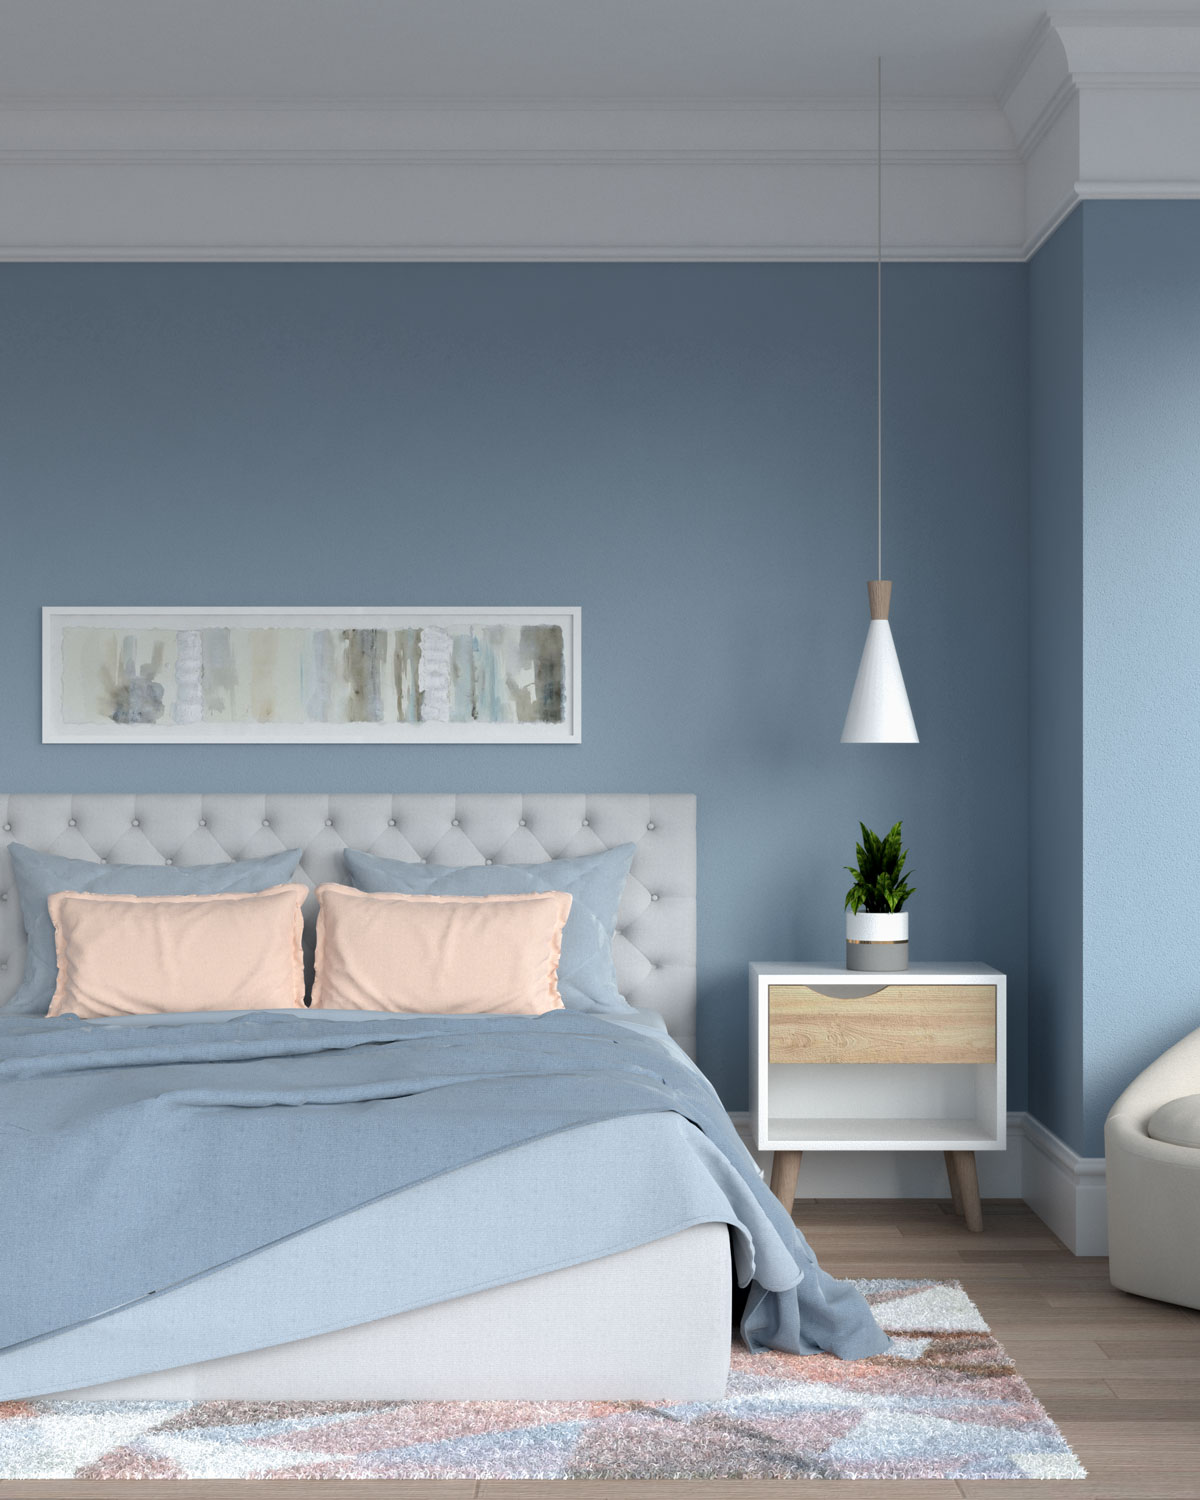 Blue and blush bedding with blue walls